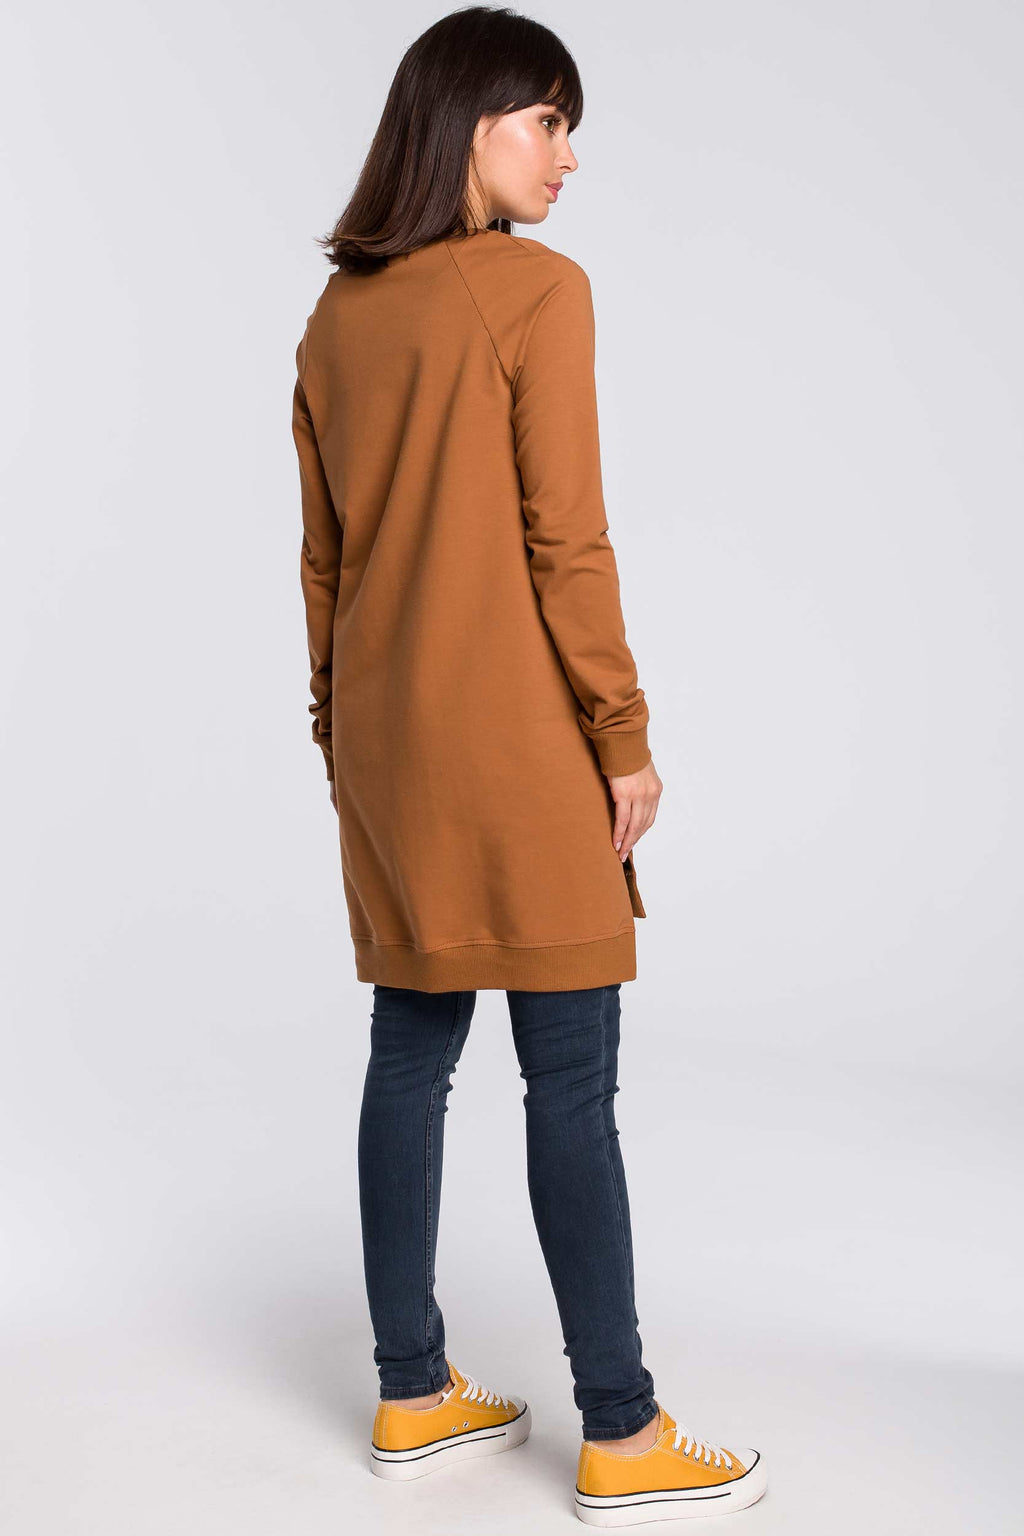 Caramel Long Cotton Sweatshirt With Split Sides - So Chic Boutique